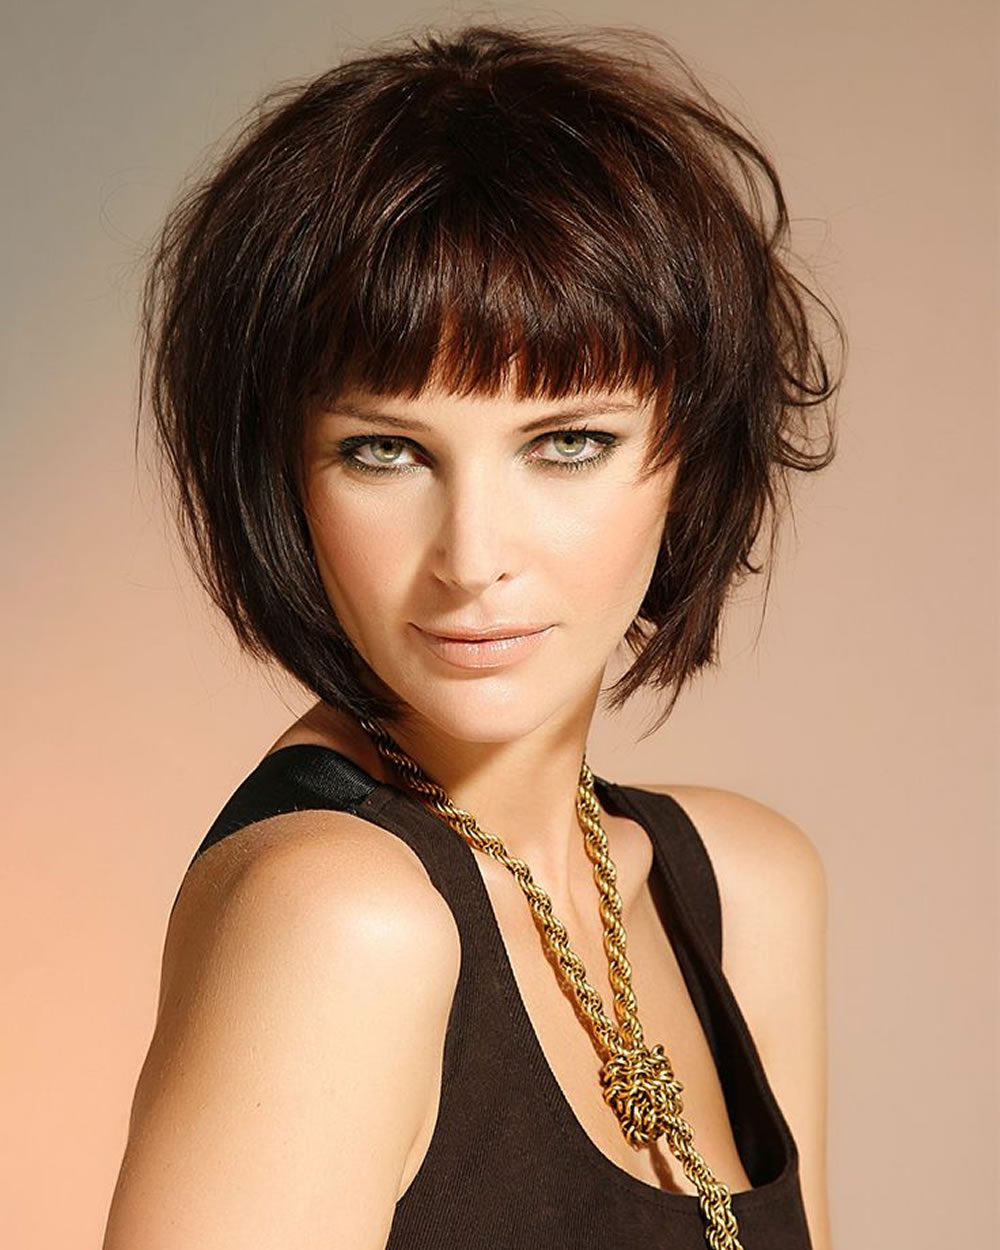 33 Best Short Bob Haircuts With Bangs And Layered Bob Within Hort Bob Haircuts With Bangs (Gallery 4 of 20)